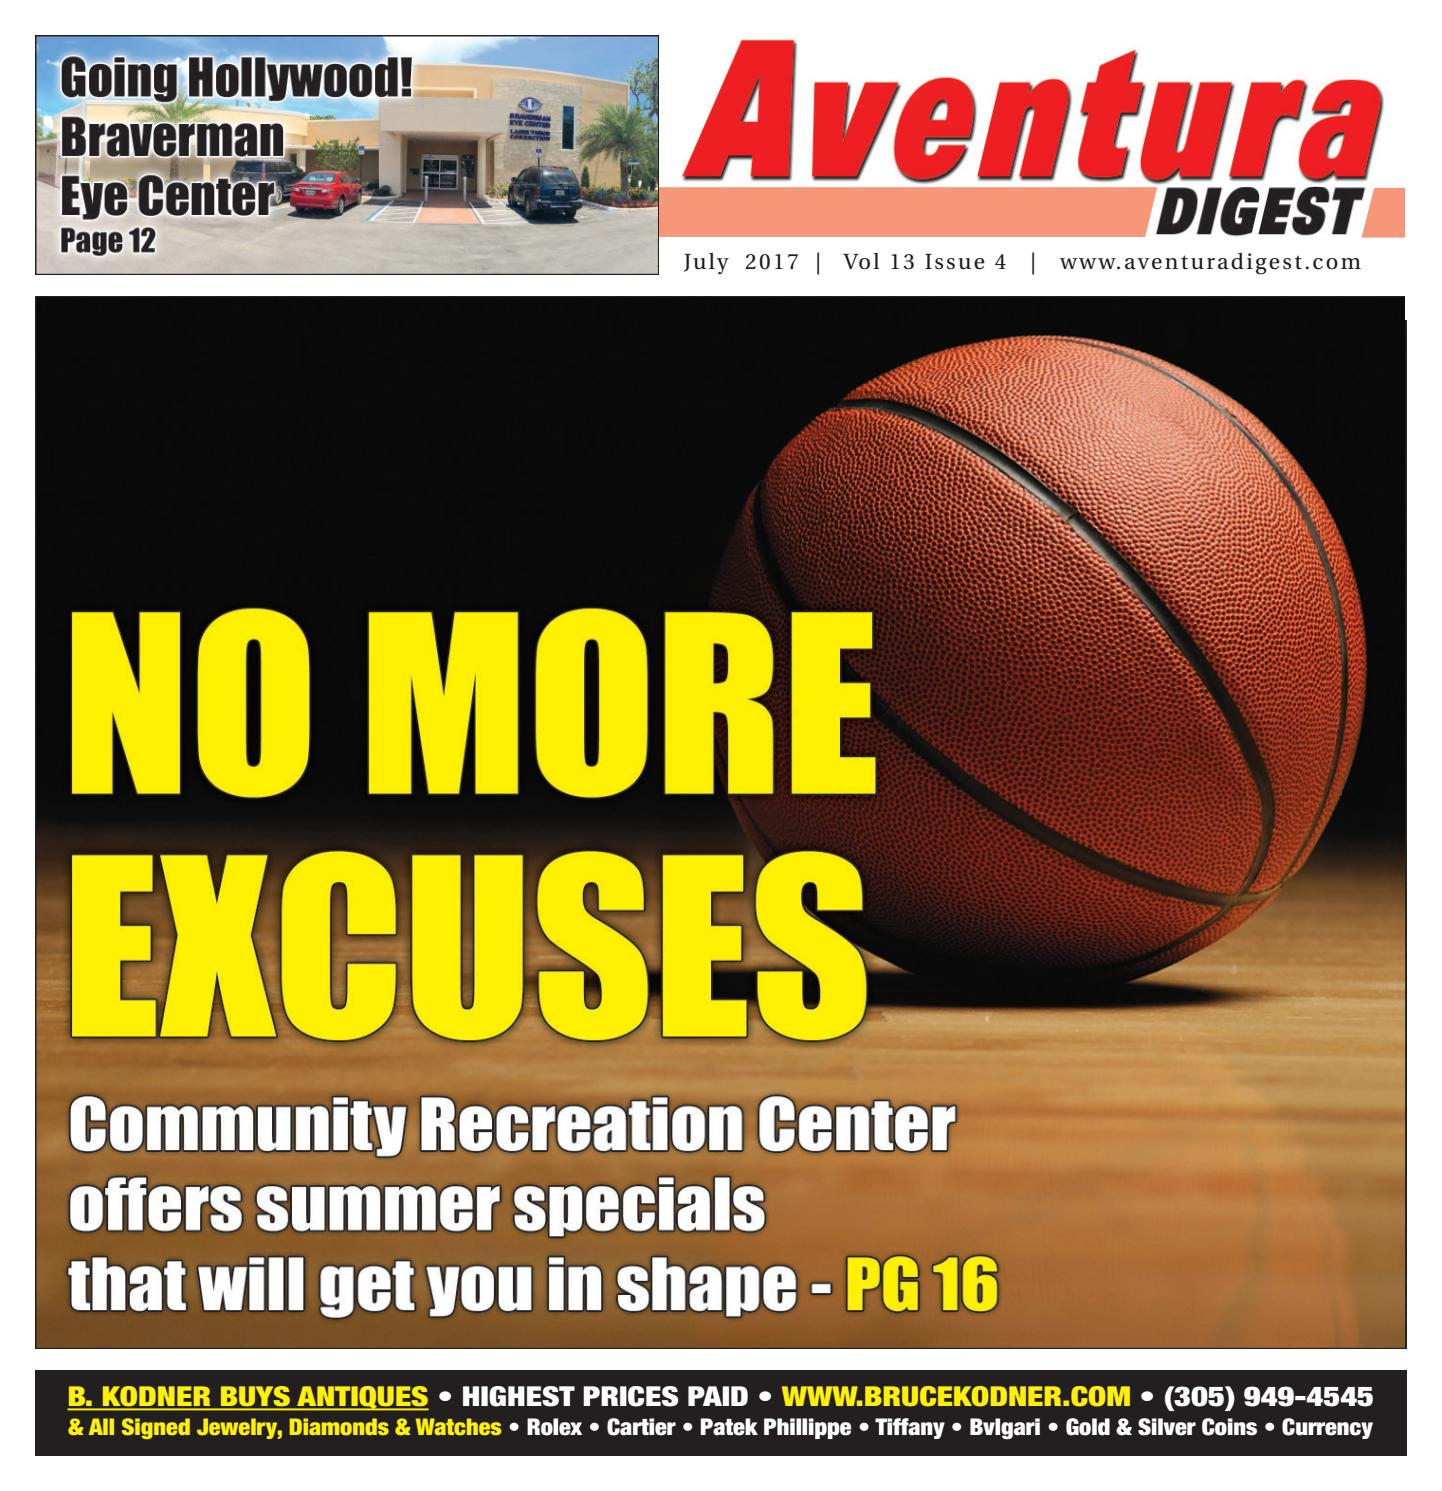 July 2017 Aventura Digest by The South Florida Sun Times Newspaper